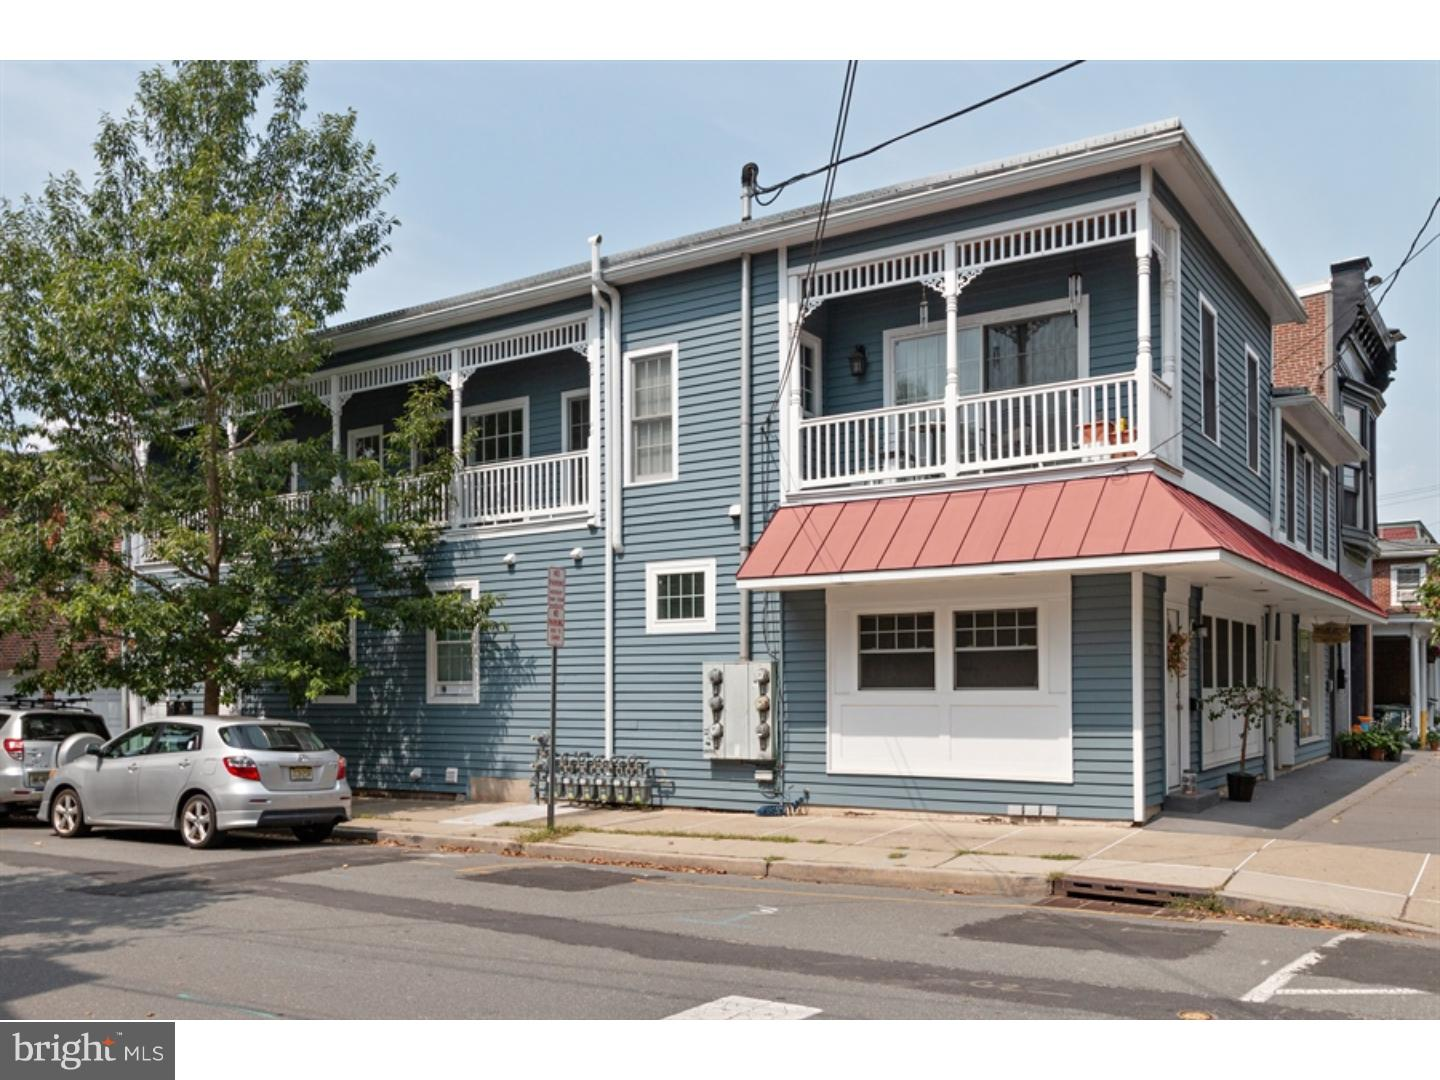 Property for Sale at 171 N UNION ST #5 Lambertville, New Jersey 08530 United States